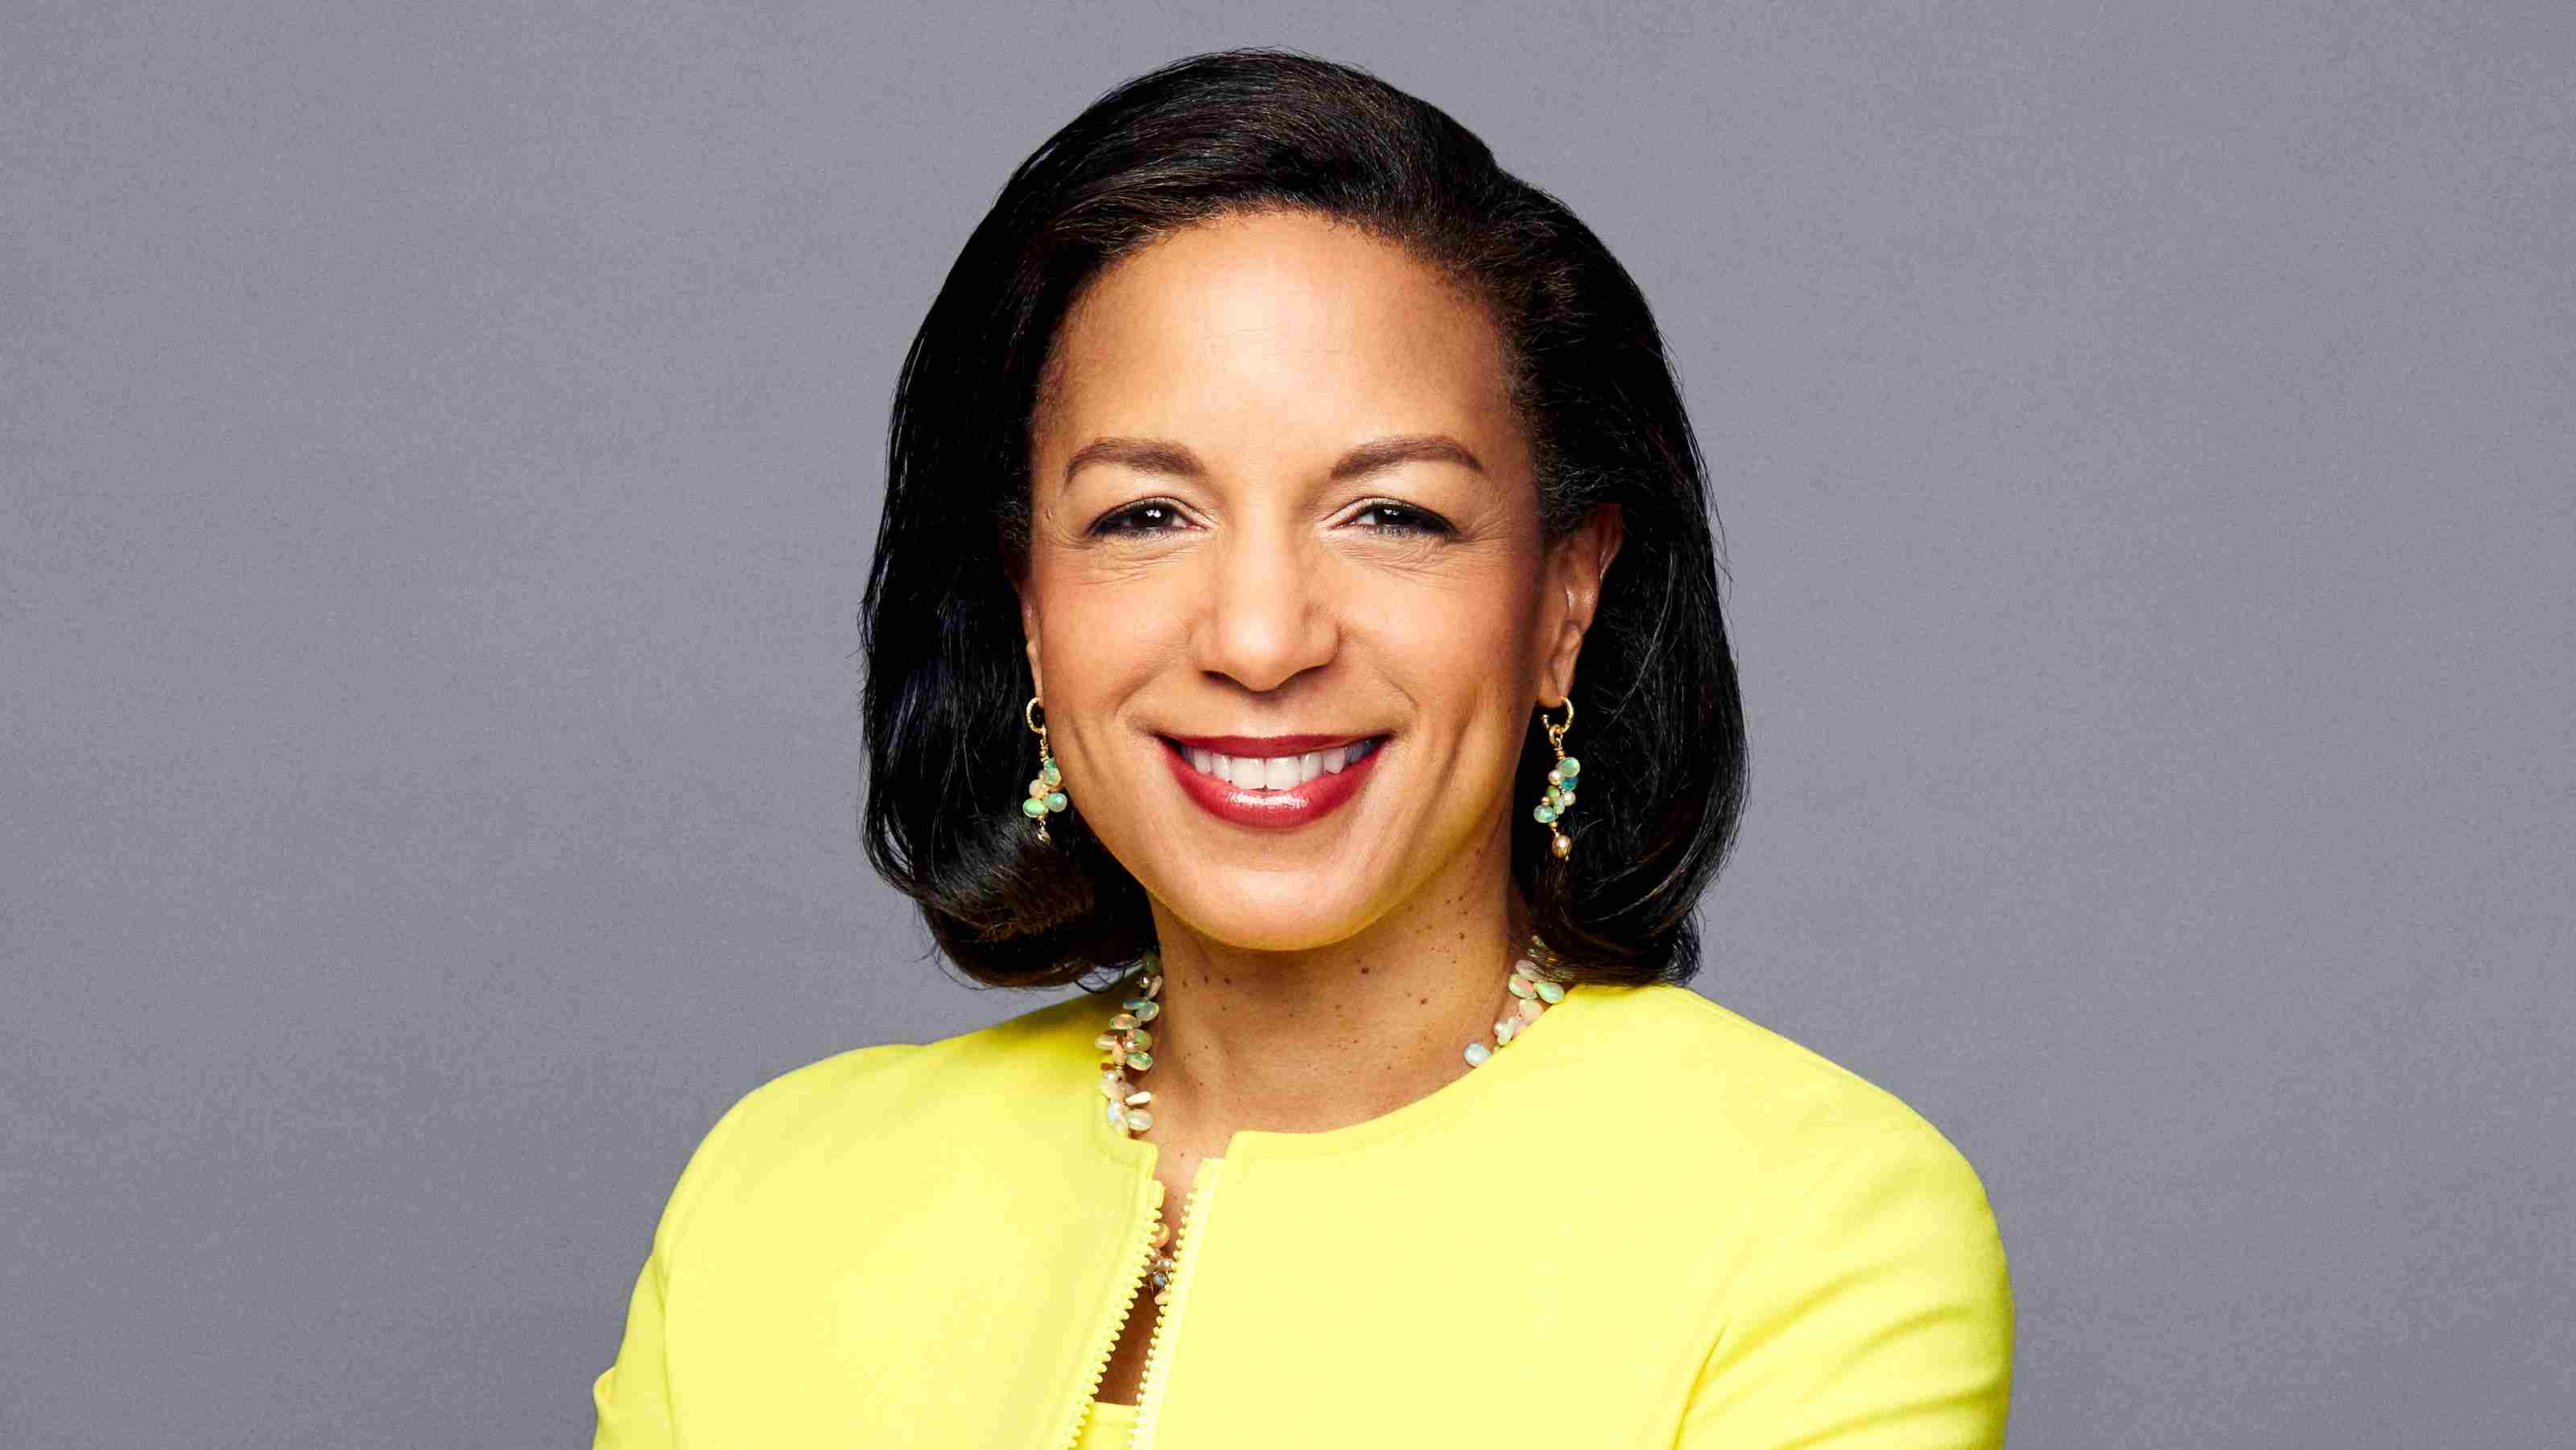 Headshot of Susan Rice. Susan is wearing a yellow jacket and is smiling at the camera.